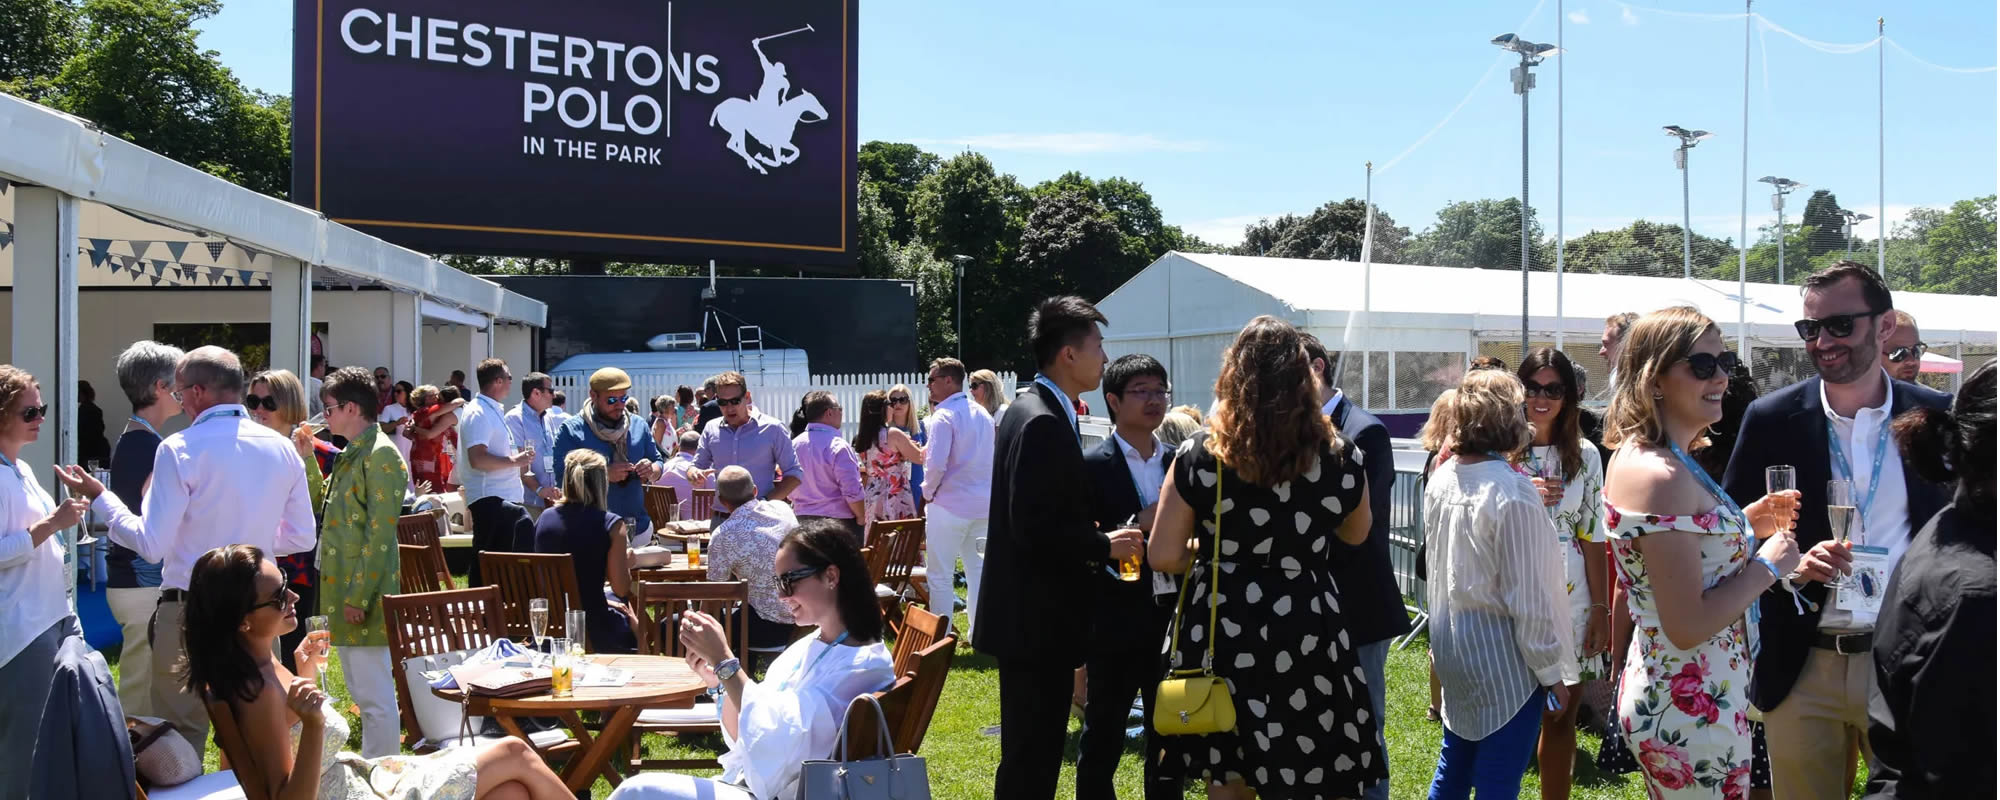 Chestertons Polo In The Park Hospitality